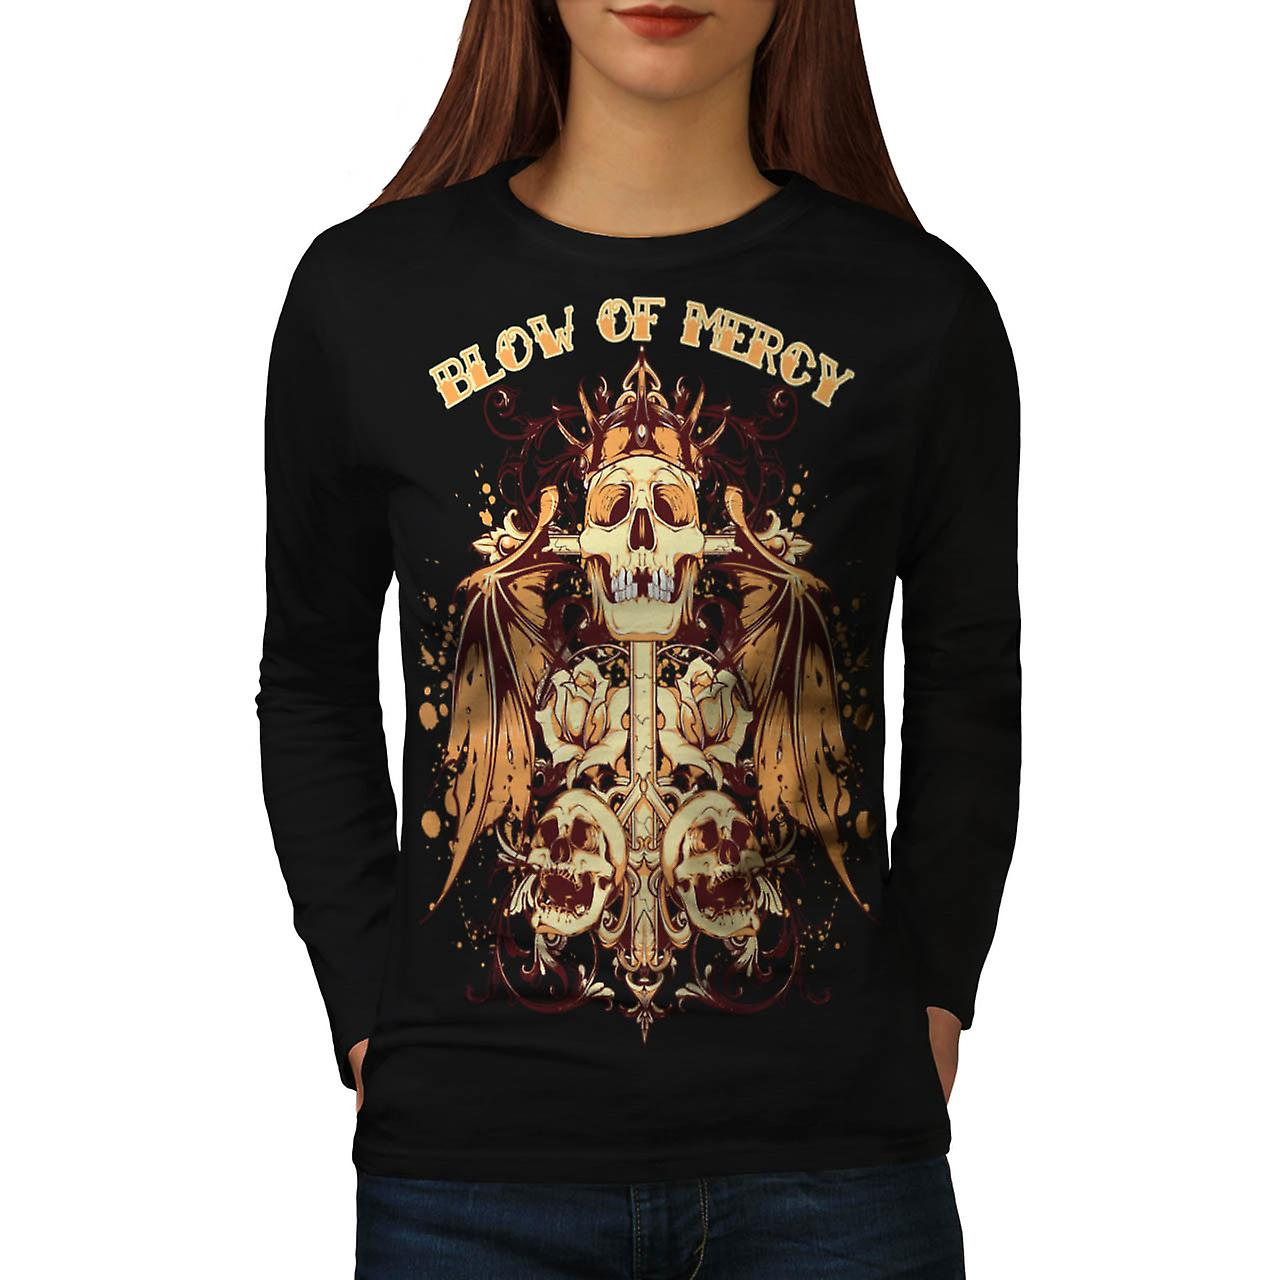 Blow Of Mercy Skull Tomb Stone Women Black Long Sleeve T-shirt | Wellcoda